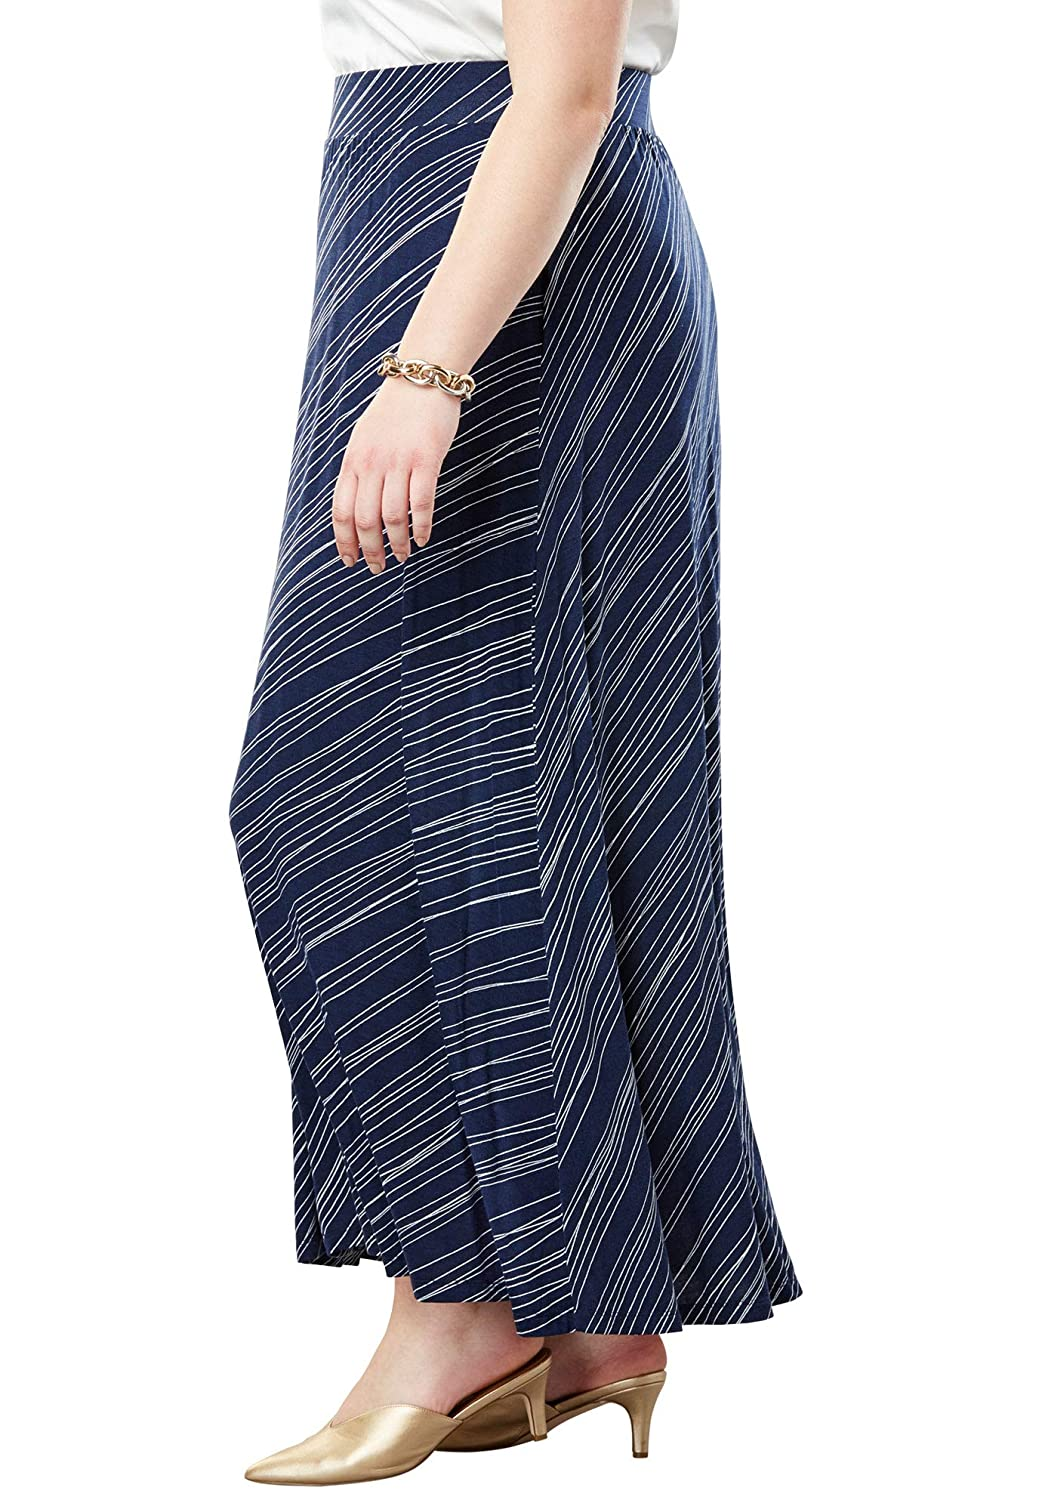 Jessica London SKIRT レディース B07D2MLG8X 22/24 Plus|Navy Bias Stripe Navy Bias Stripe 22/24 Plus